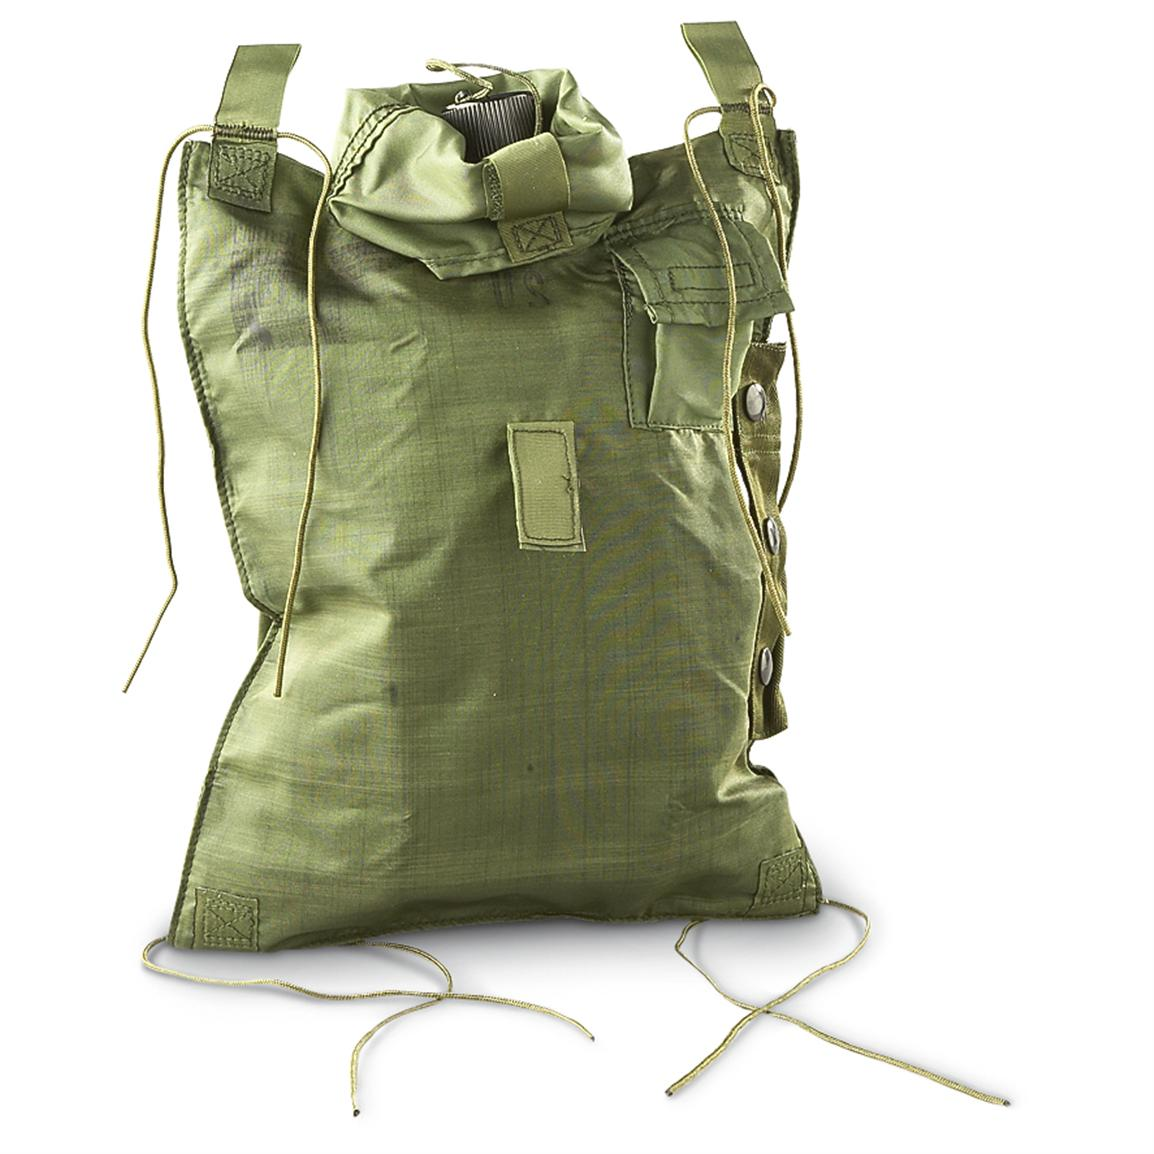 New U.S. Military 5-qt. Collapsible Canteen, Olive Drab